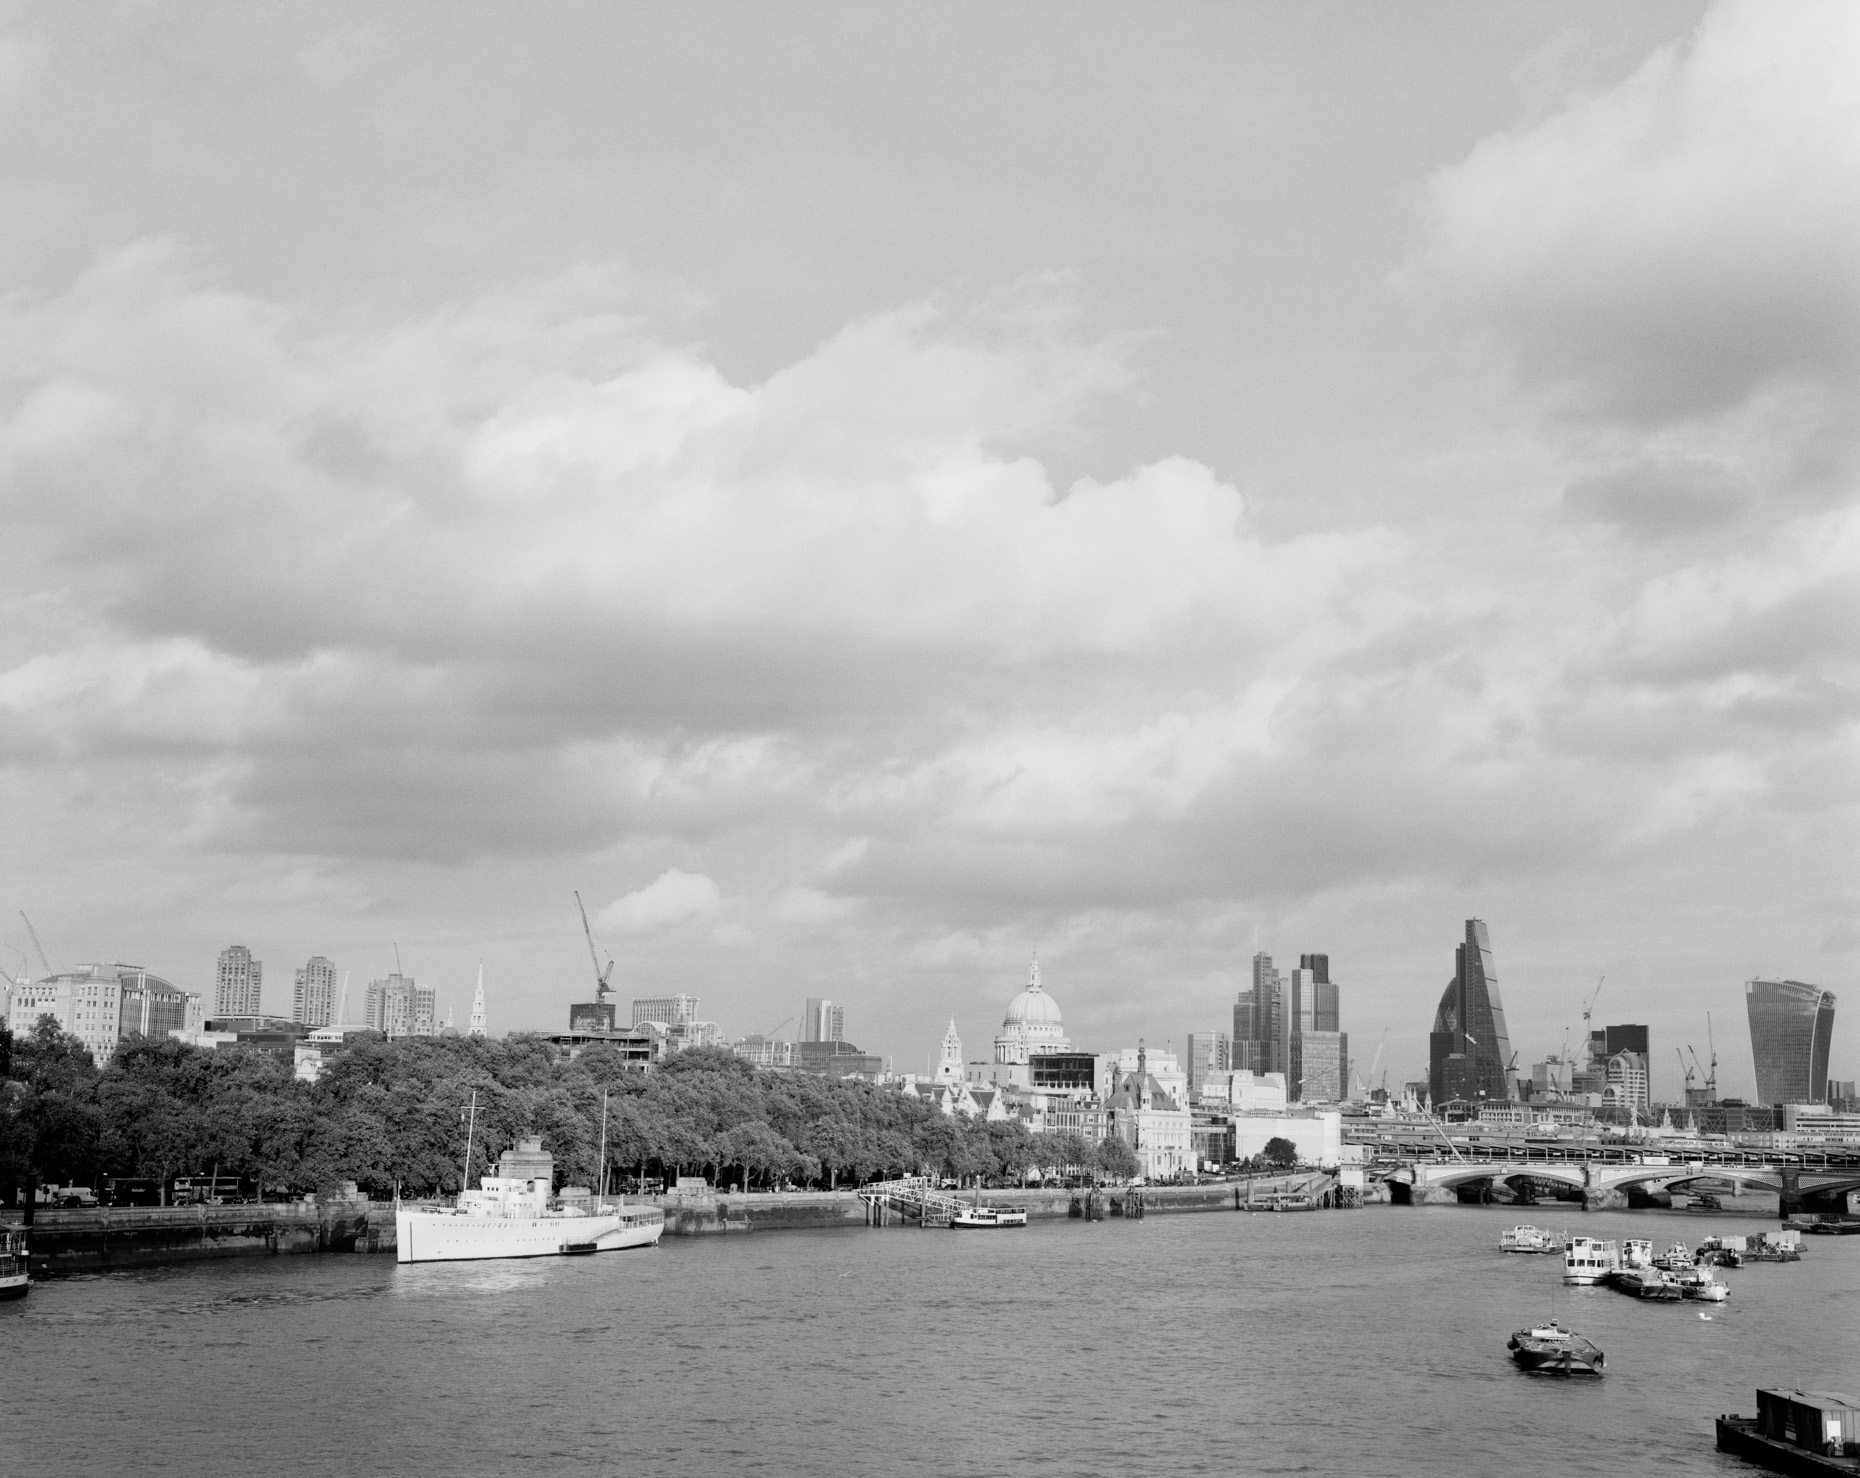 Axel Bernstorff, Collectable limited edition fine photographic art prints. River Thames II, from Waterloo Bridge, towards HQS Wellington, Saint Pauls Cathedral and The City, London, England.